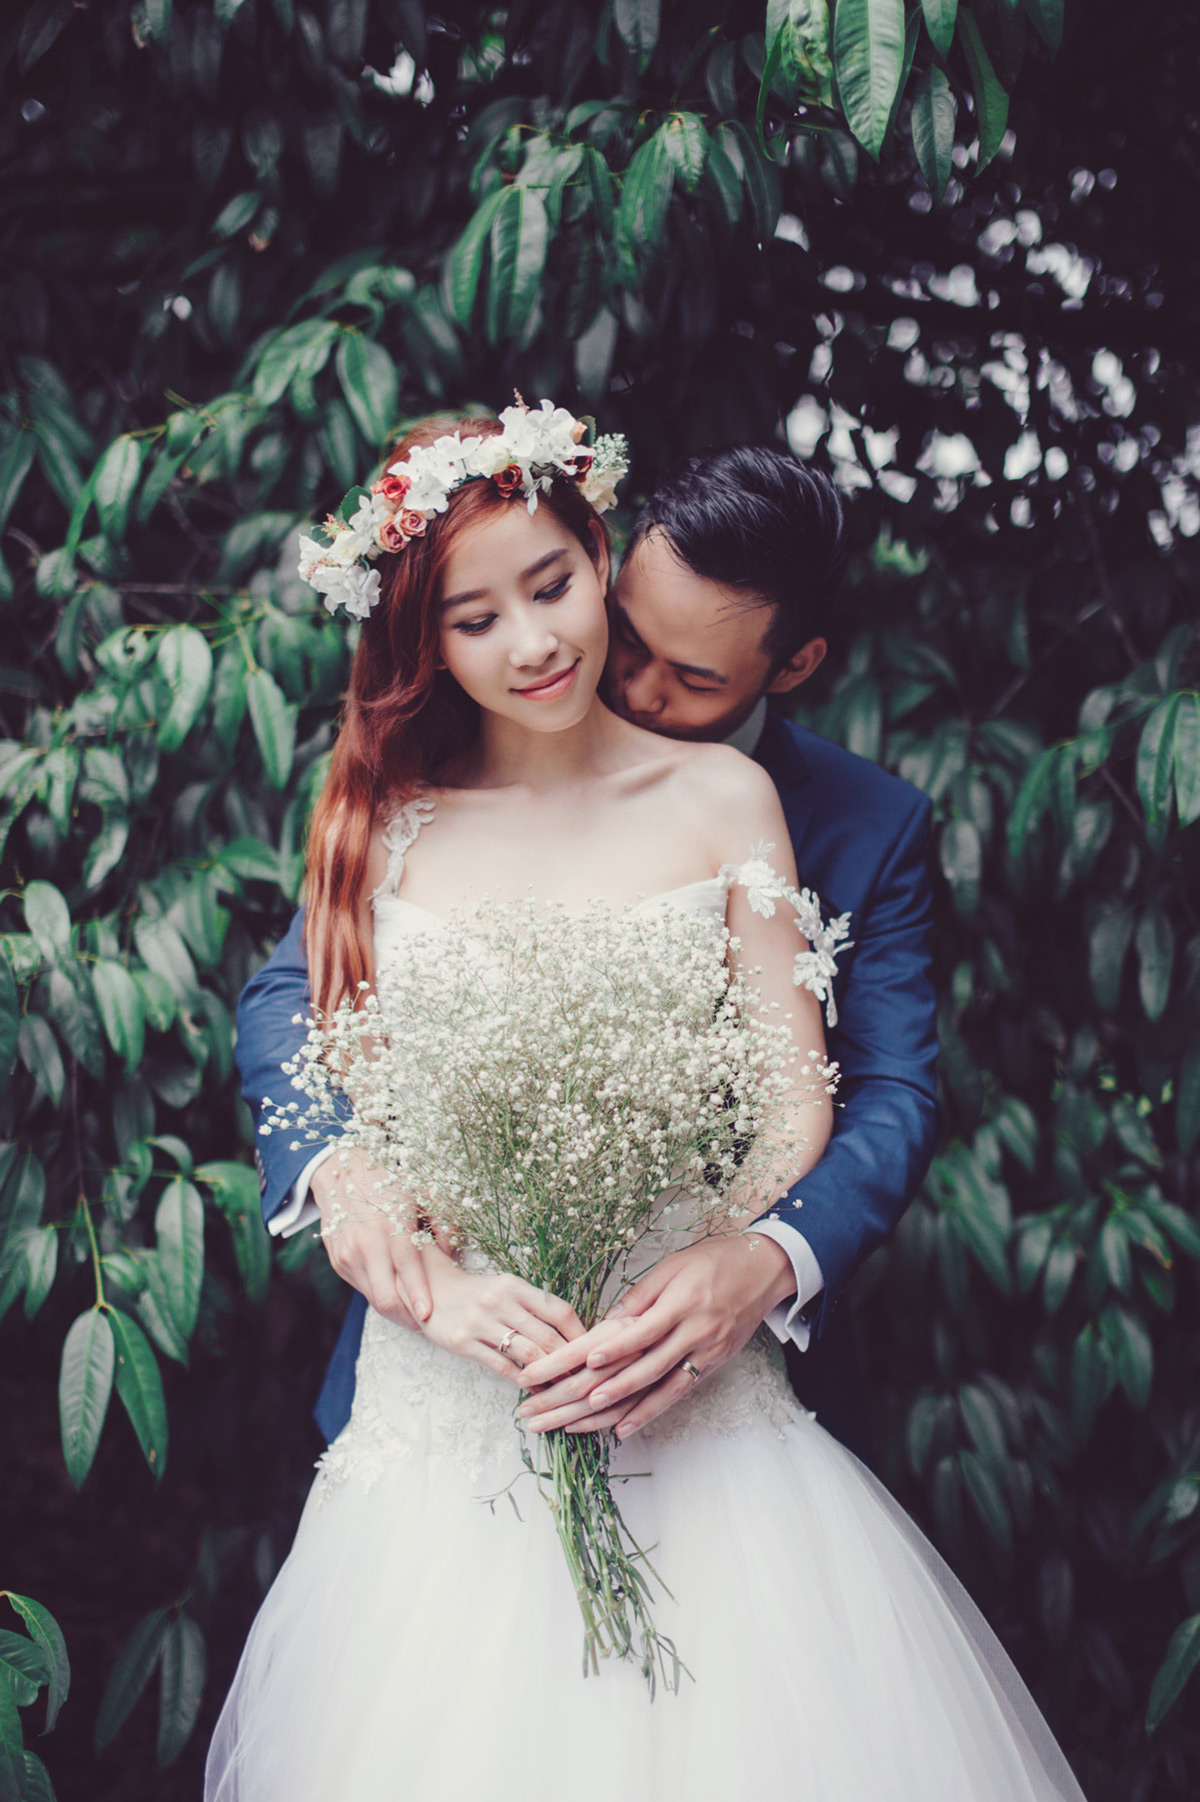 26-whimsical-hightea-tea-party-wedding-prewedding-malaysia-hellojanelee